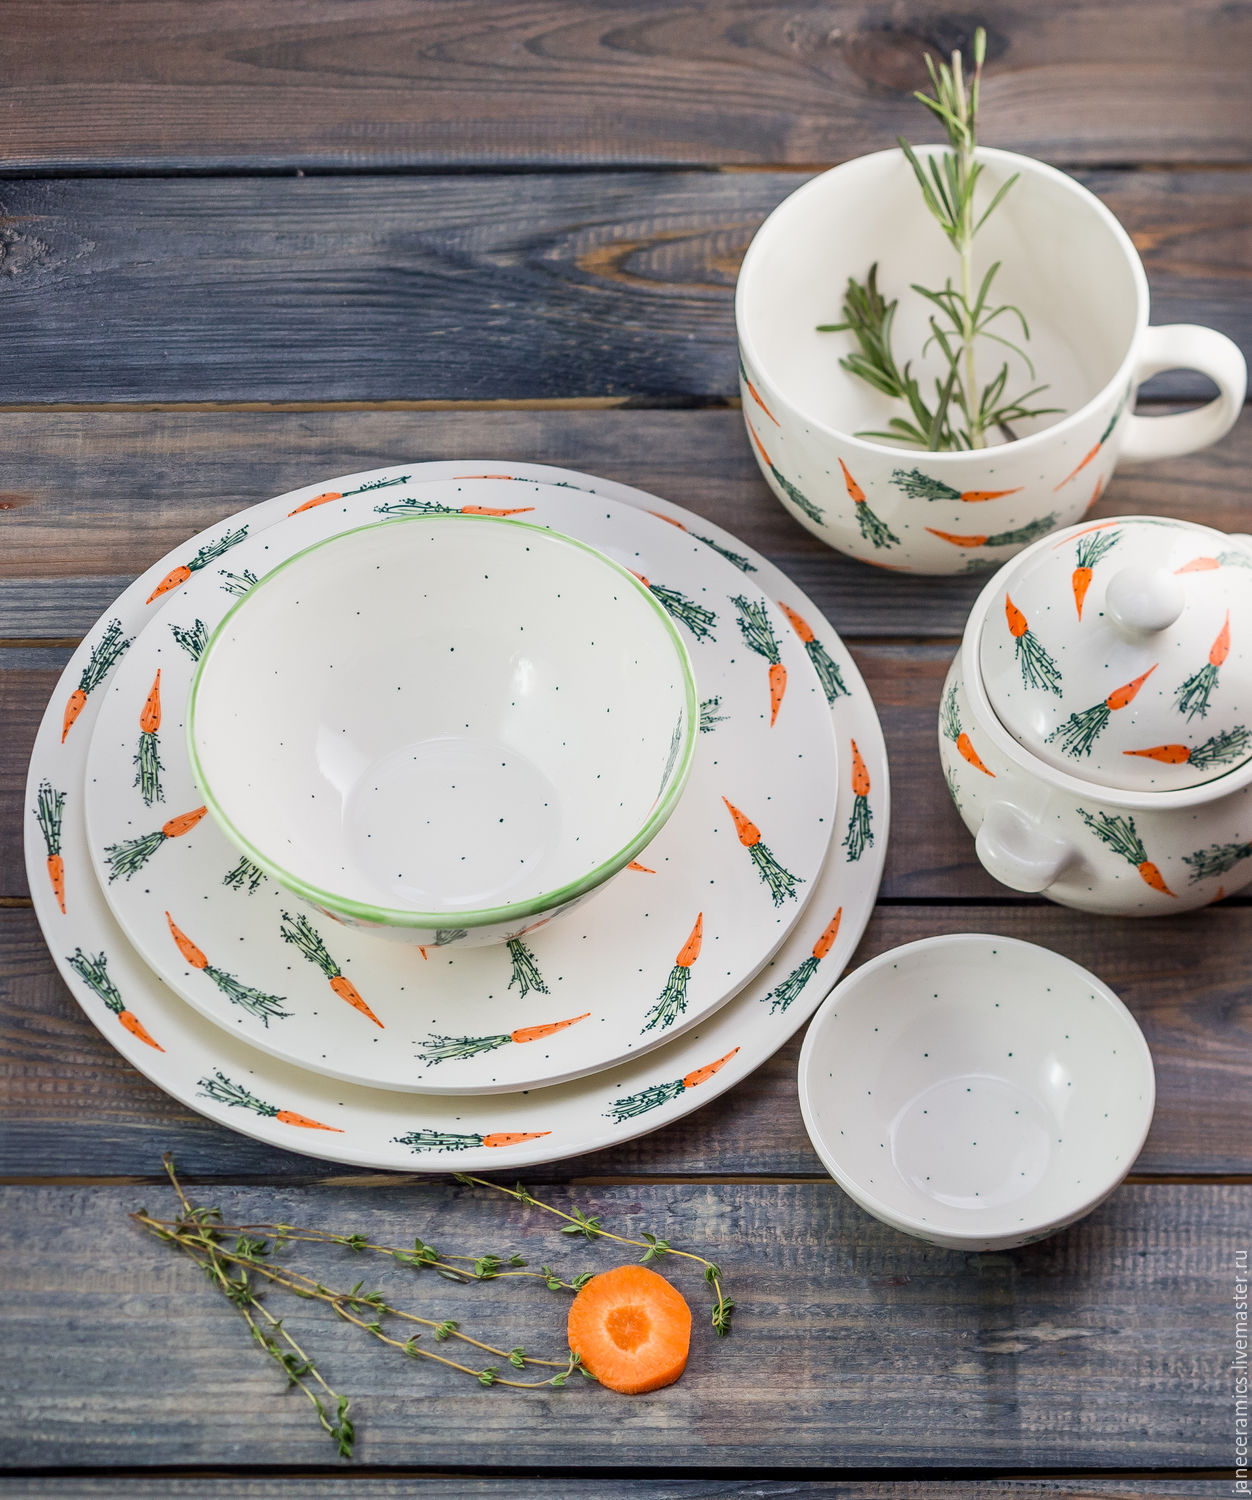 Included in this pack: two plates (diameter 25 and 22 cm), bowl (0,5 l), Cup of soup (0,6 l), bowl (0,5 l) and gravy boat (100 ml)